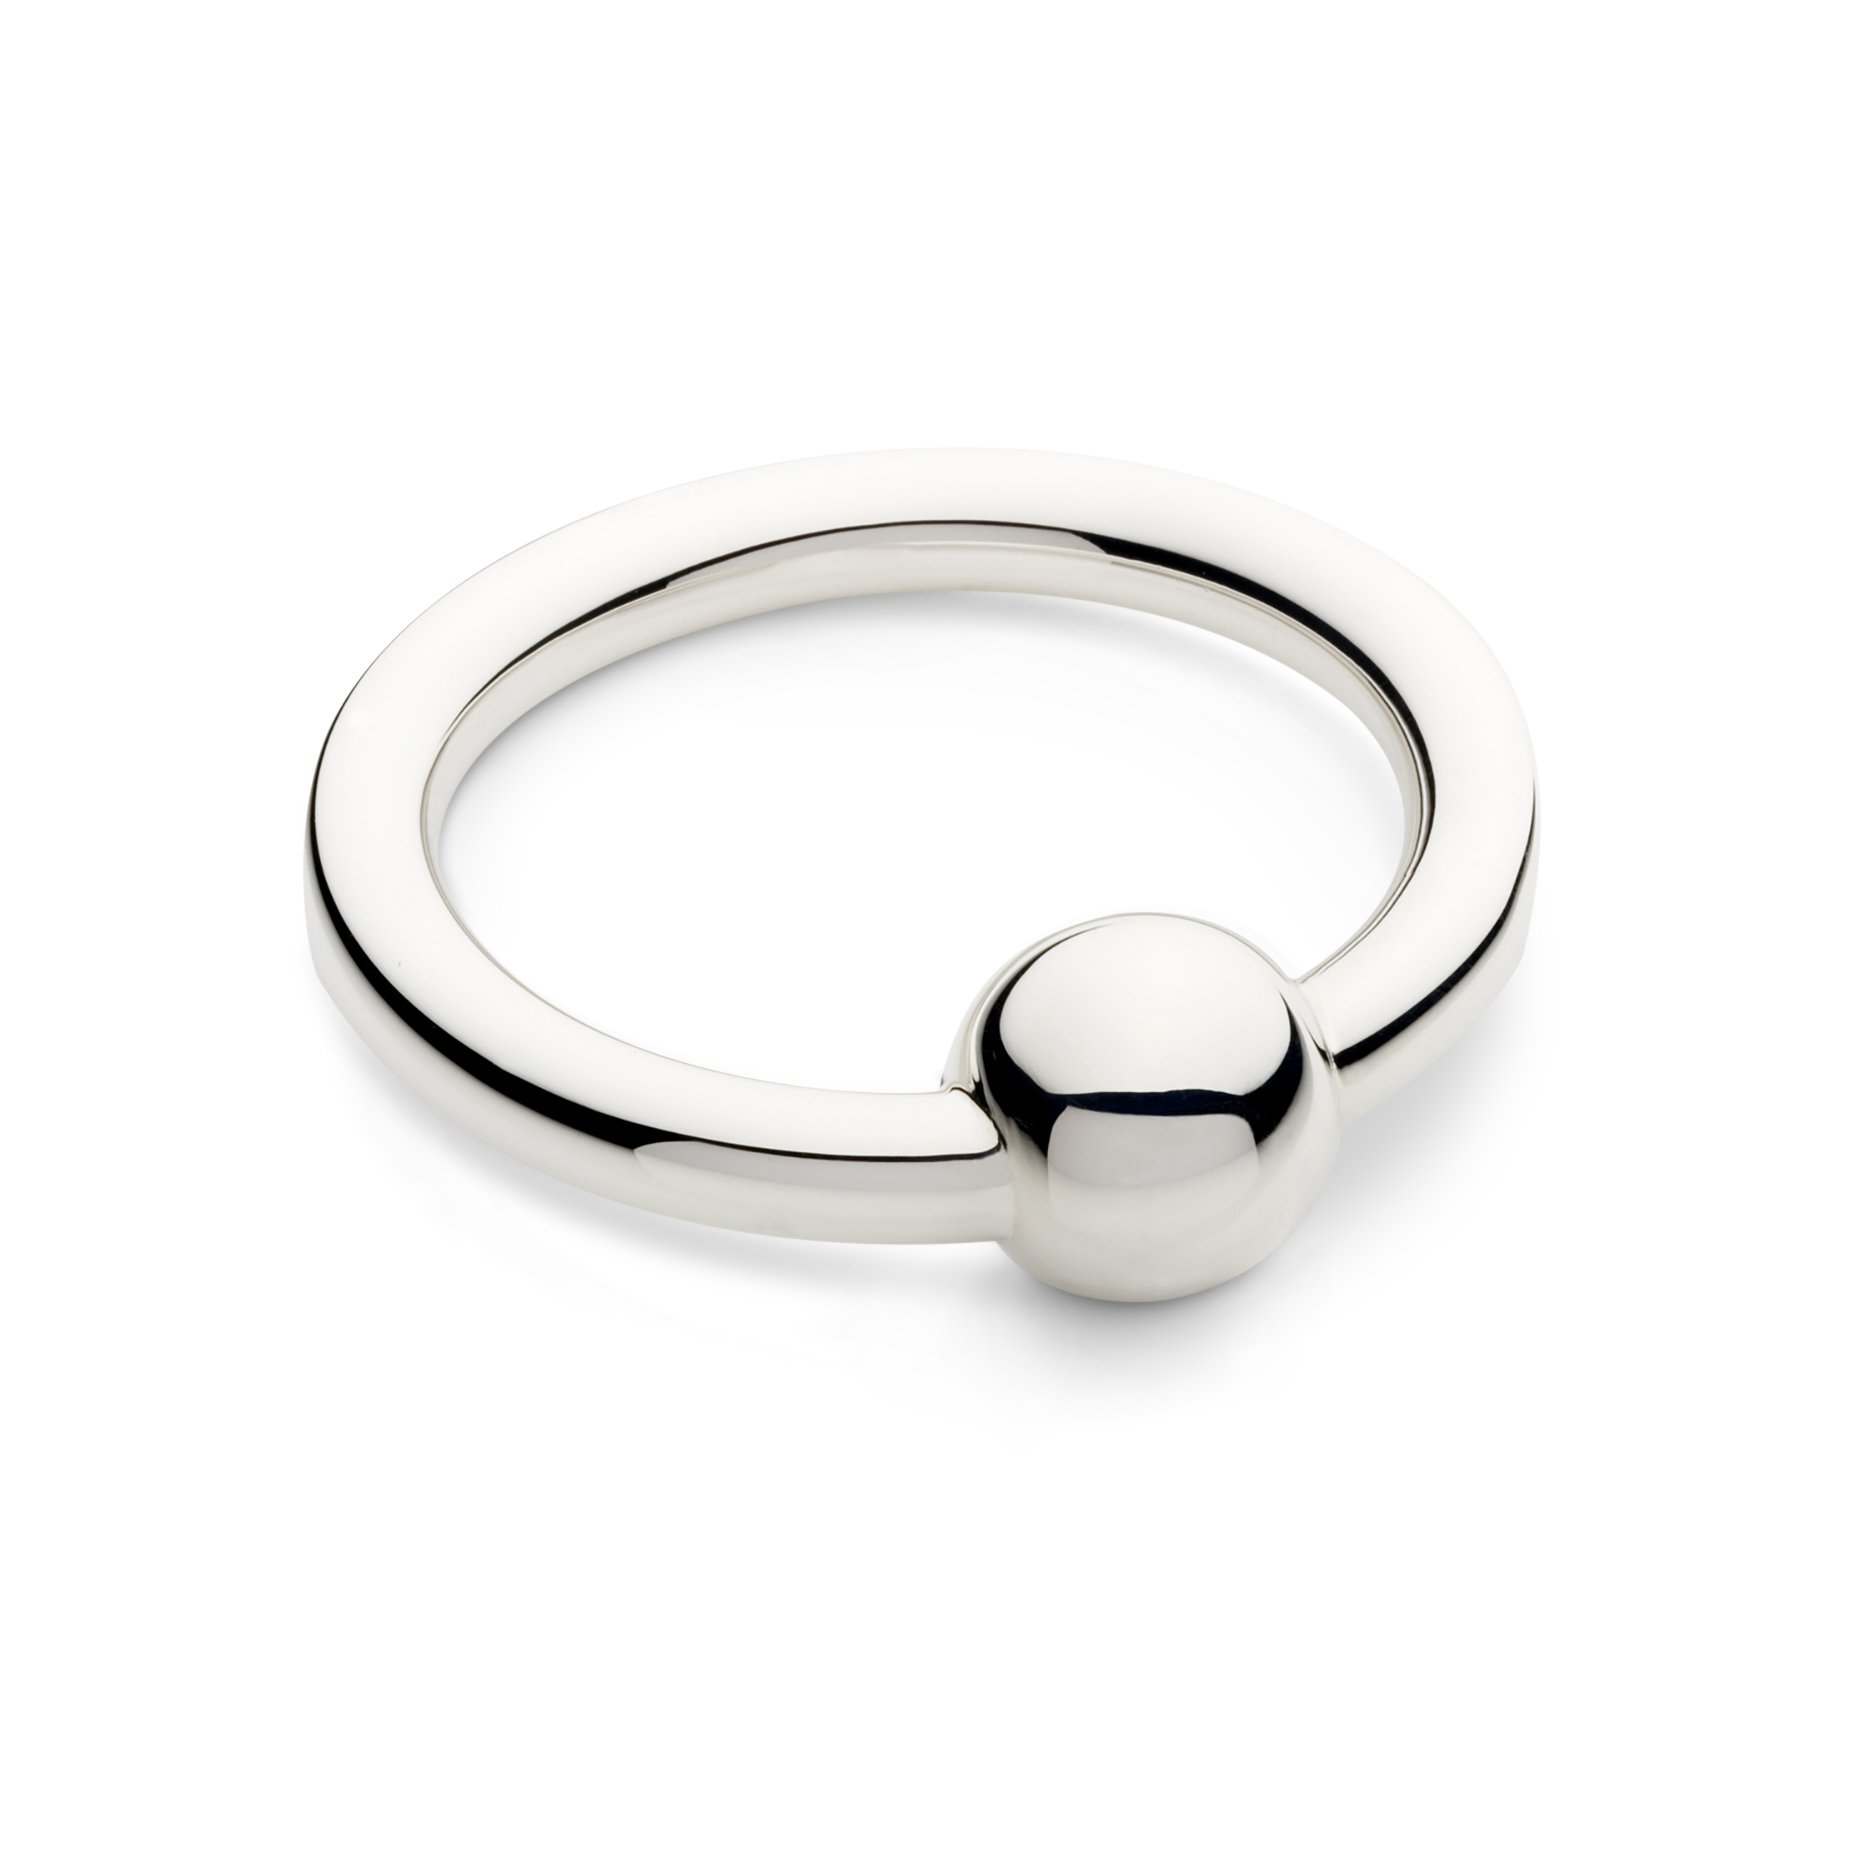 Cunill 5-Ounce Single Ring/Ball Baby Rattle, 2-Inch, Sterling Silver by Cunill